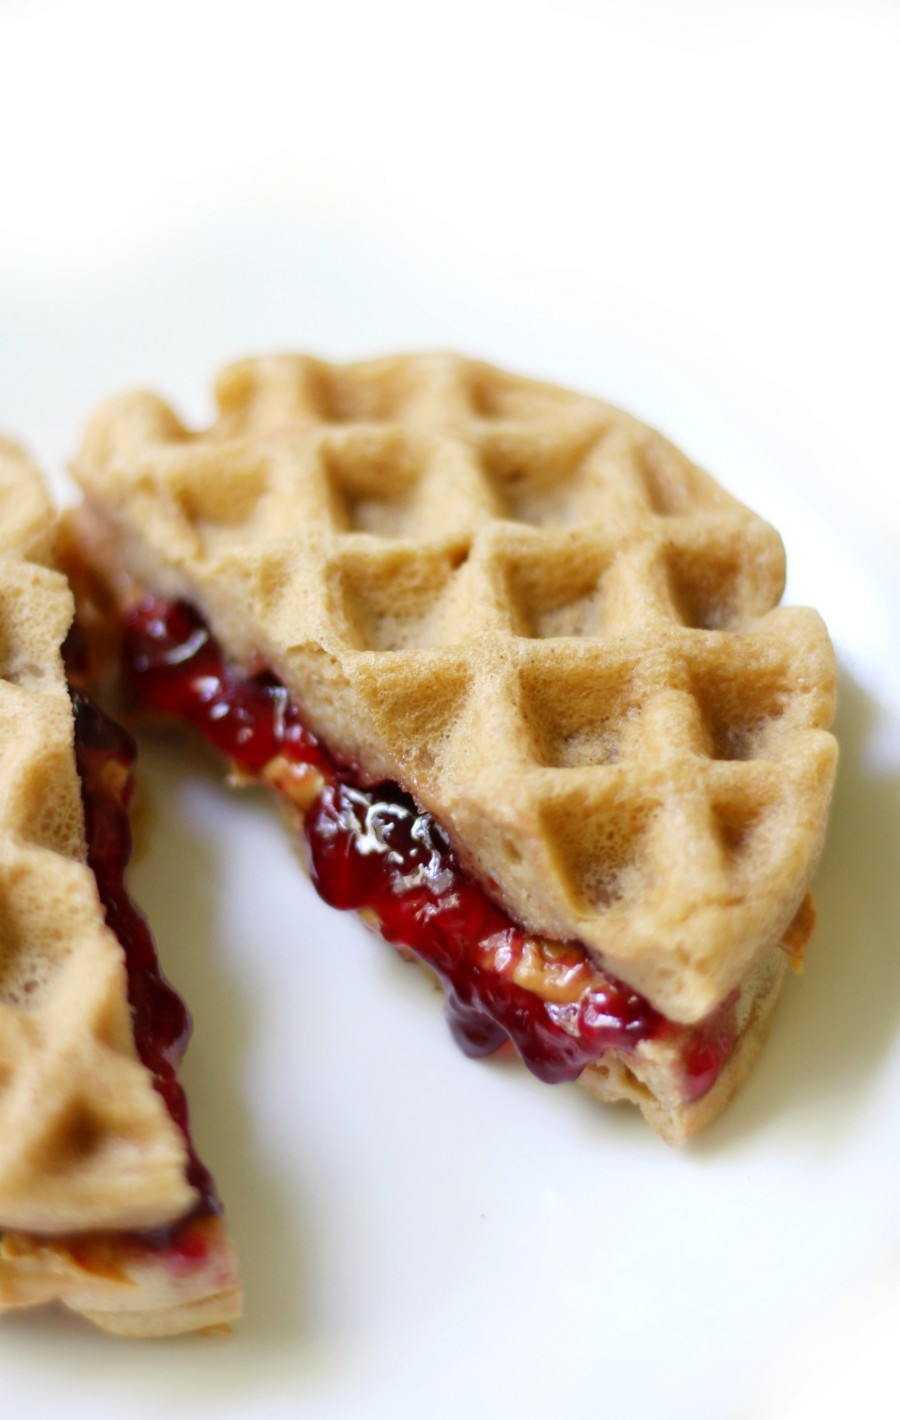 Peanut Butter and Jelly Waffle Sandwich cut in half on a white plate